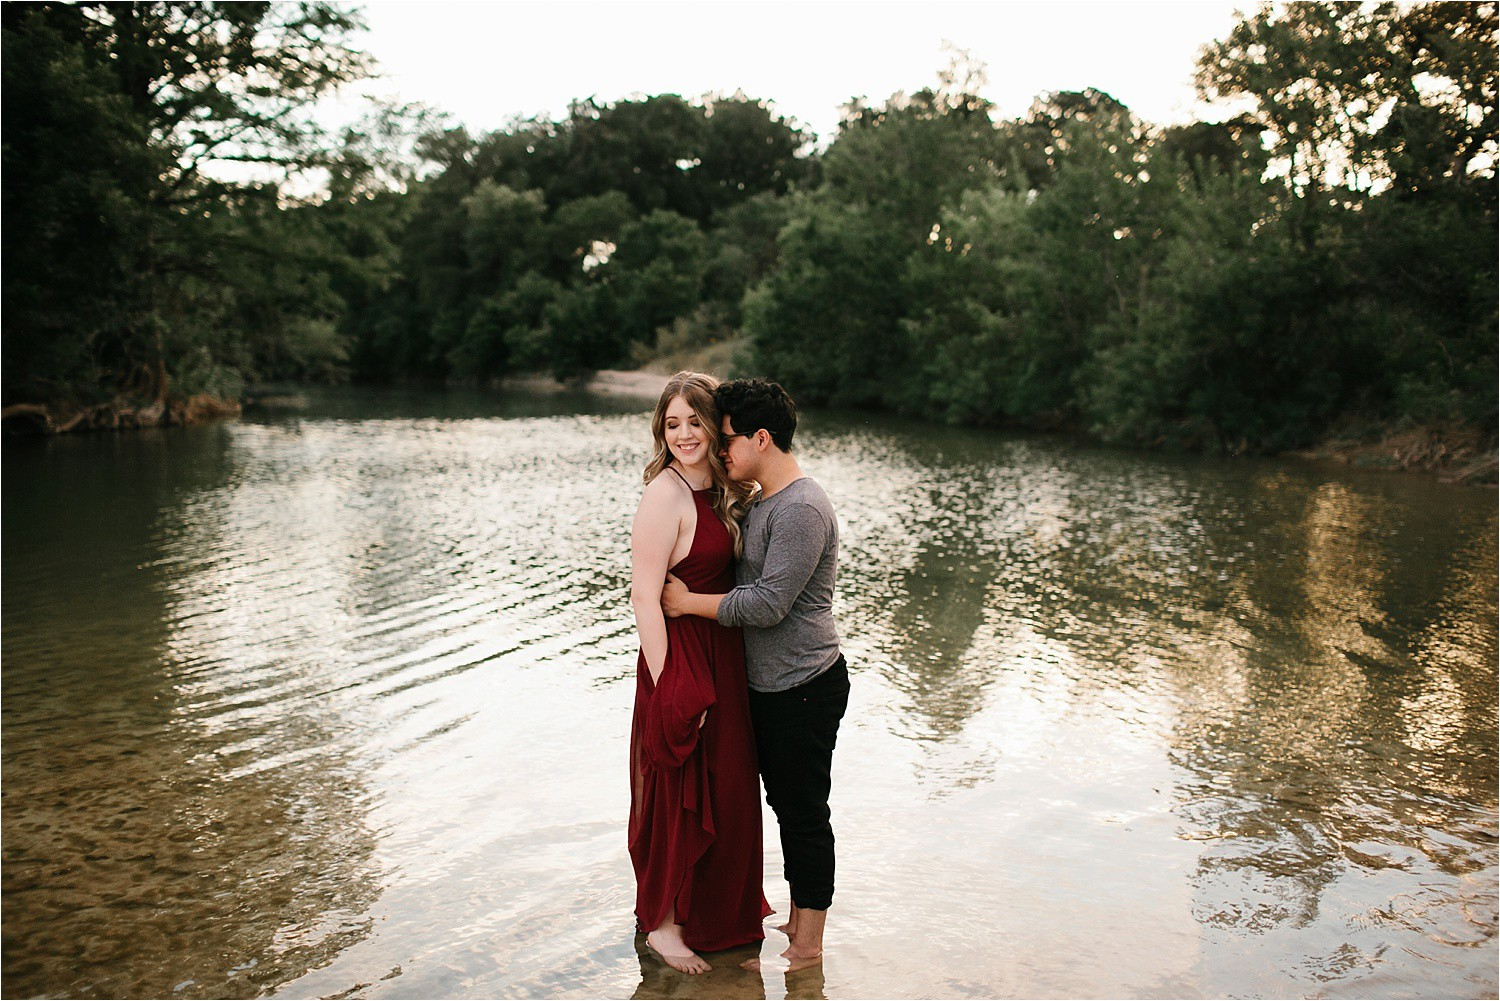 Romantic Austin, Texas Engagement Session with outfit inspiration + flowy red dress from Lulu's at Mckinney Falls State Park by North Texas Wedding Photographer, Rachel Meagan Photography __ 50